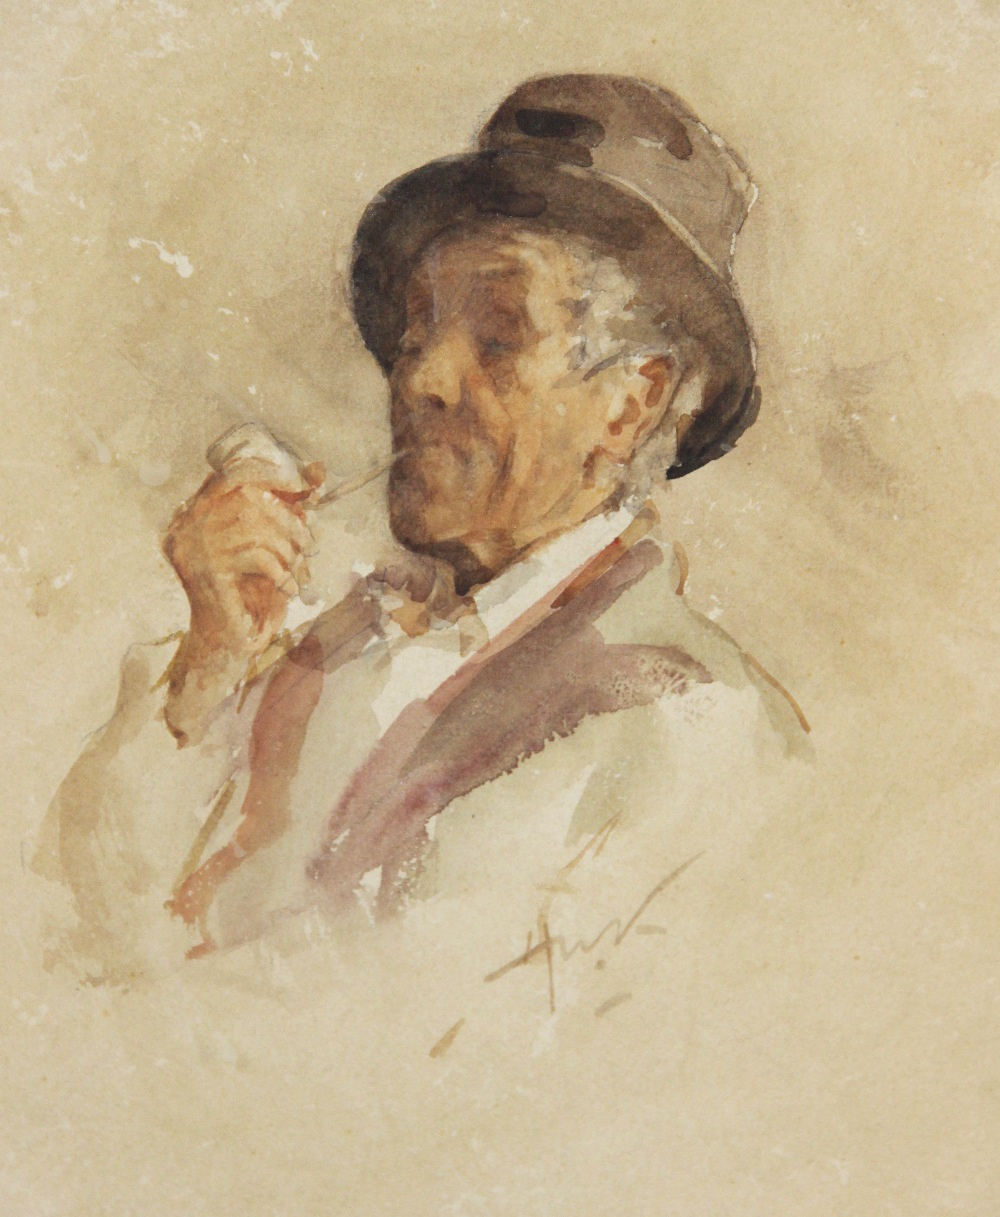 Henry Wright Kerr, R.S.A. R.S.W. (Scottish, 1857-1936), A man relaxing with a pipe, Watercolour on